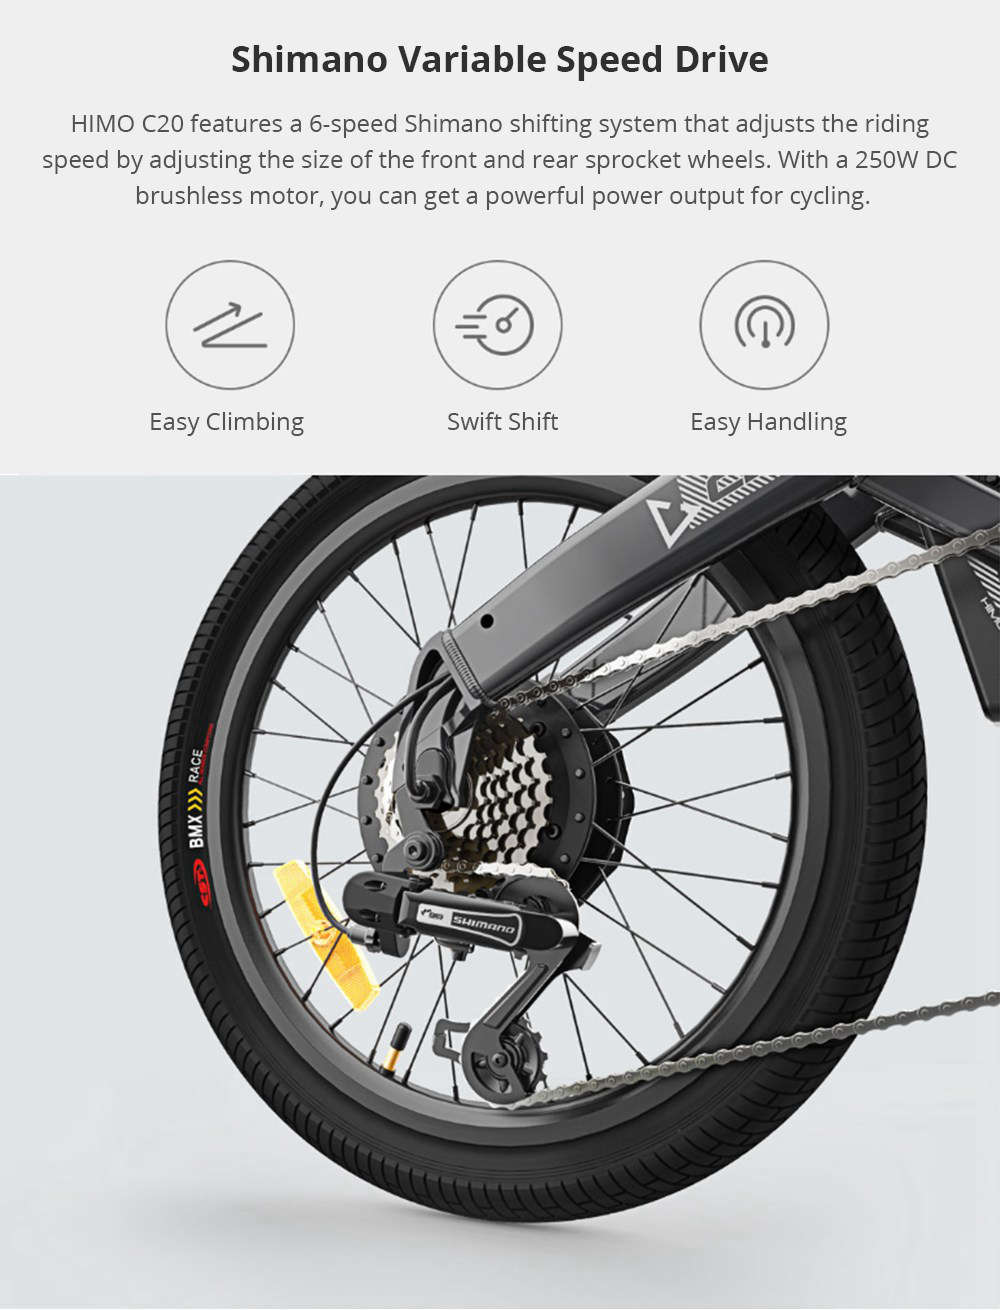 Xiaomi HIMO C20 Foldable Electric Moped Bicycle 250W Motor Max 25km/h 10Ah Battery Hidden Inflator Pump Variable Speed Drive - White